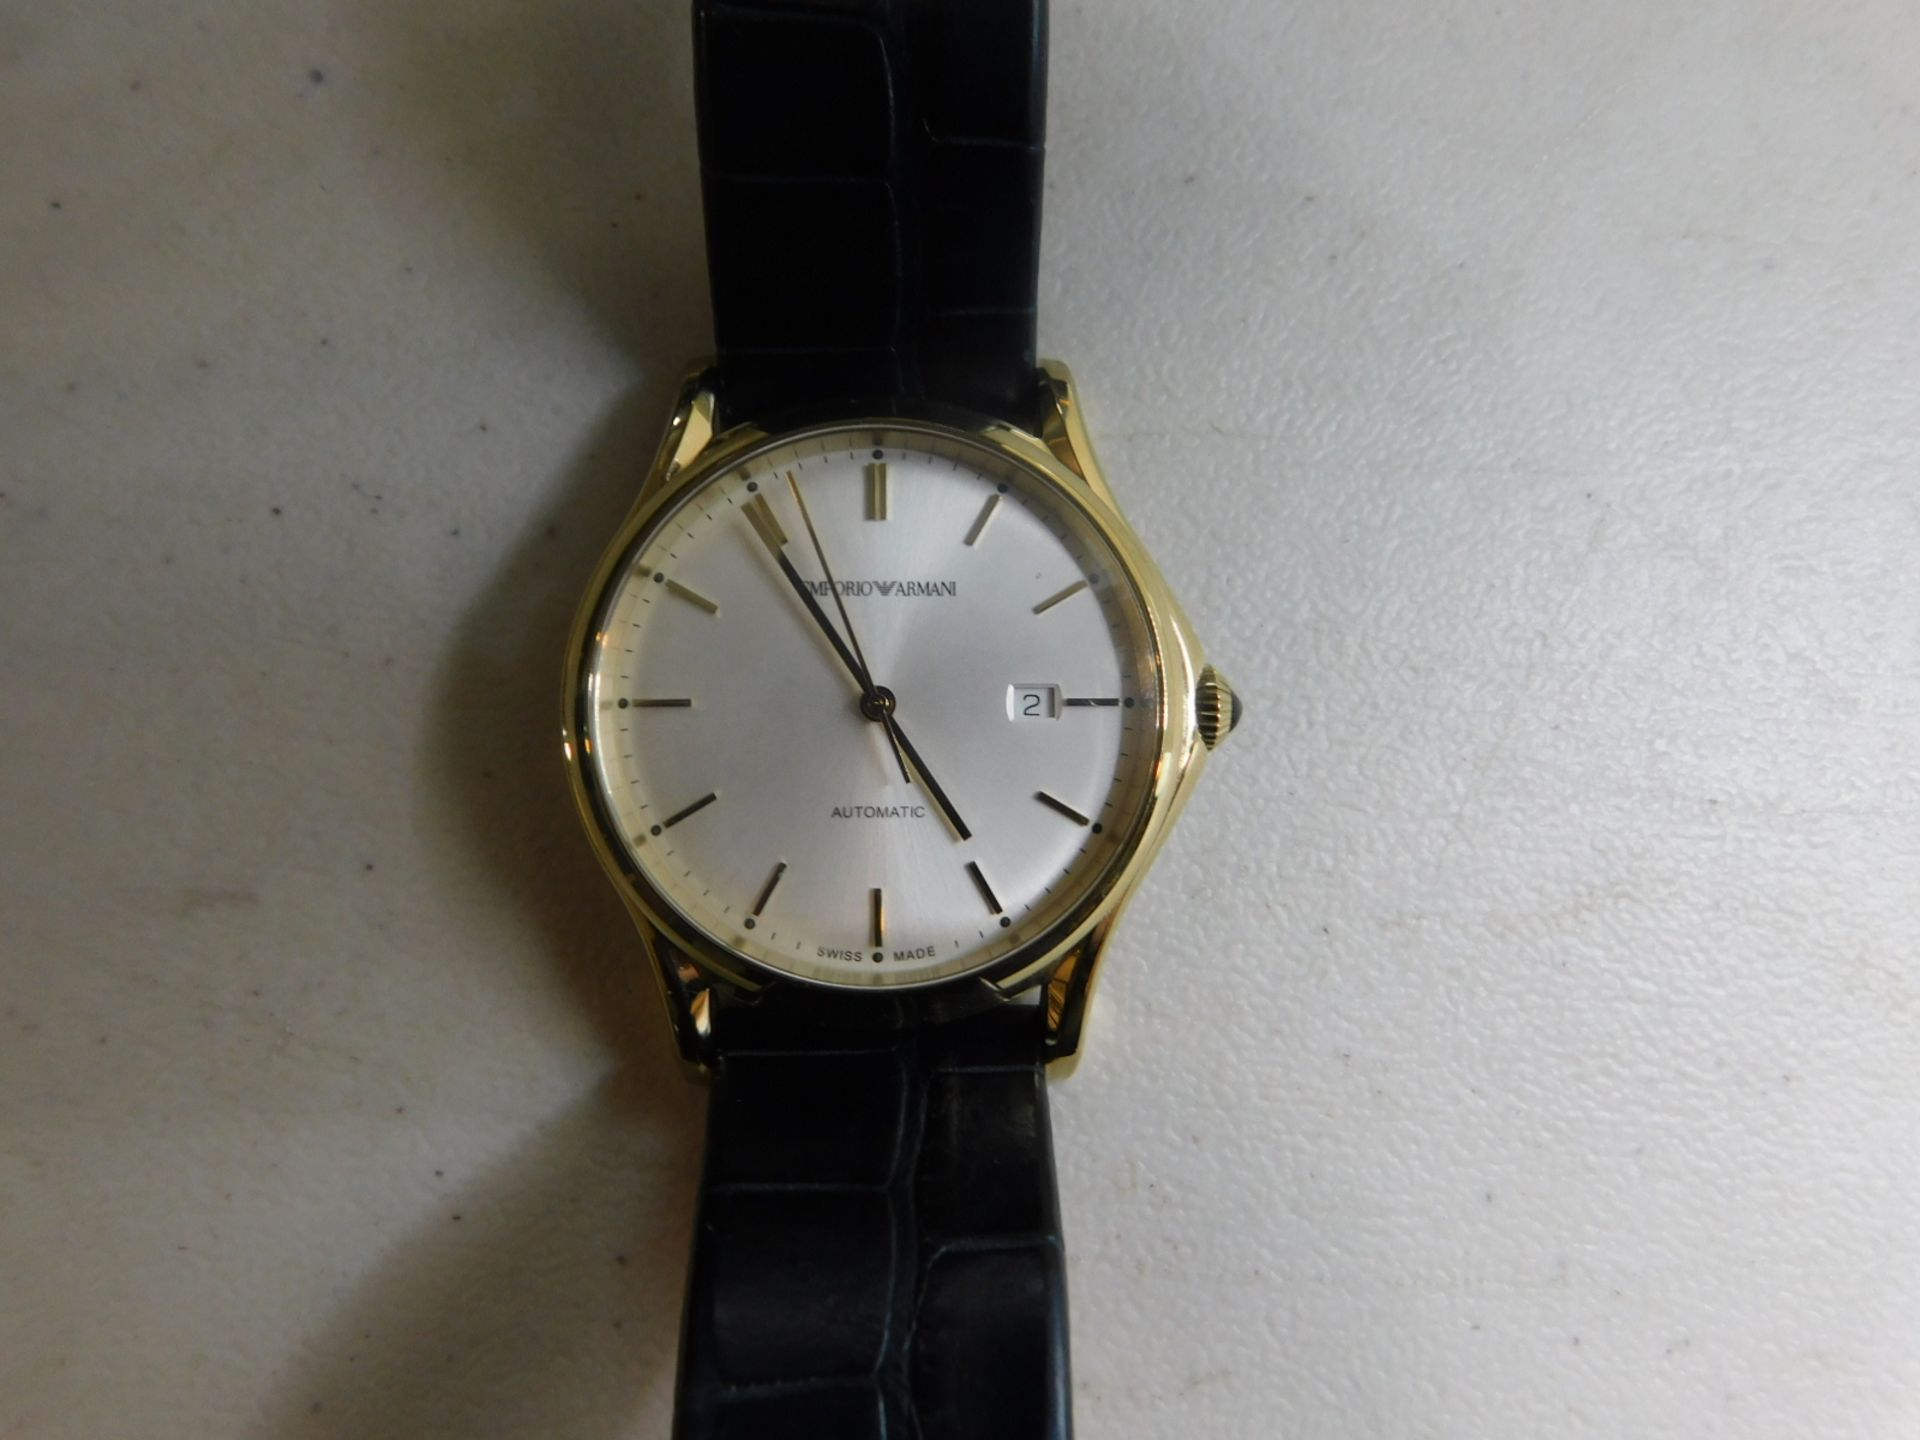 1 EMPORIO ARMANI SWISS MADE GOLD GENTS WATCH MODEL ARS3019 RRP £600